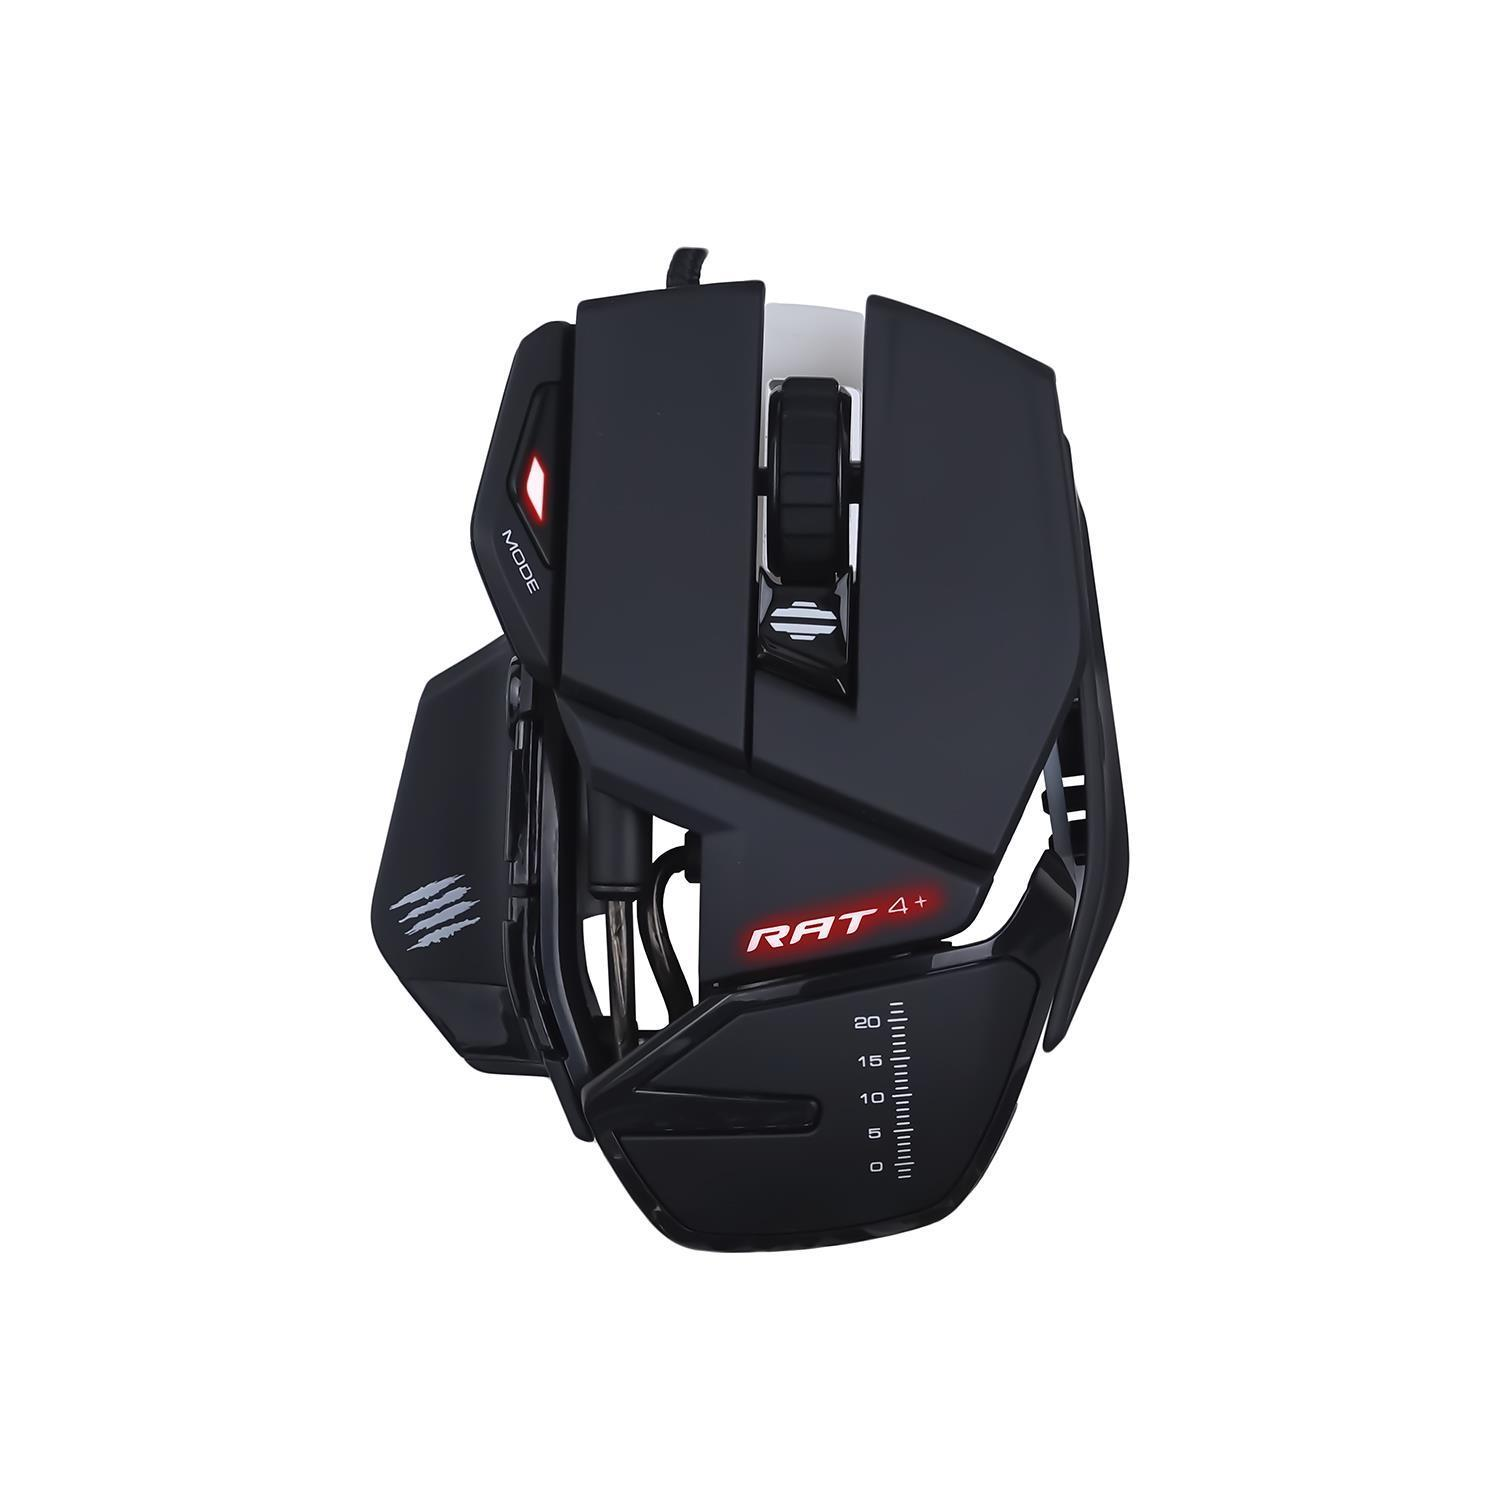 Mad Catz R.A.T. 4+ Optical Gaming Mouse